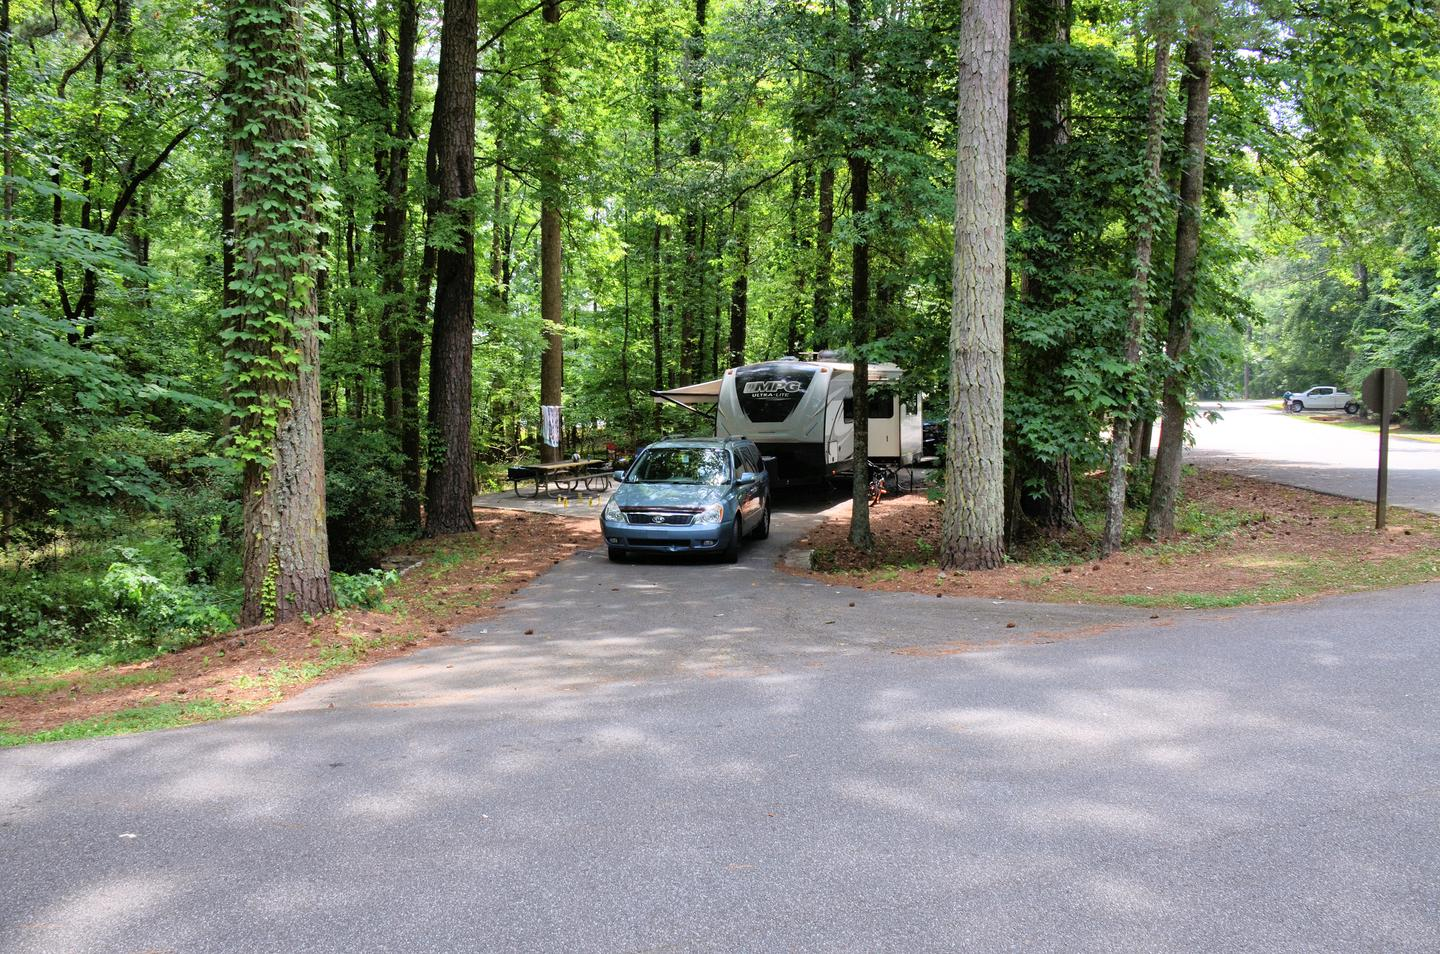 Pull-thru exit, driveway slopeVictoria Campground, campsite 37.